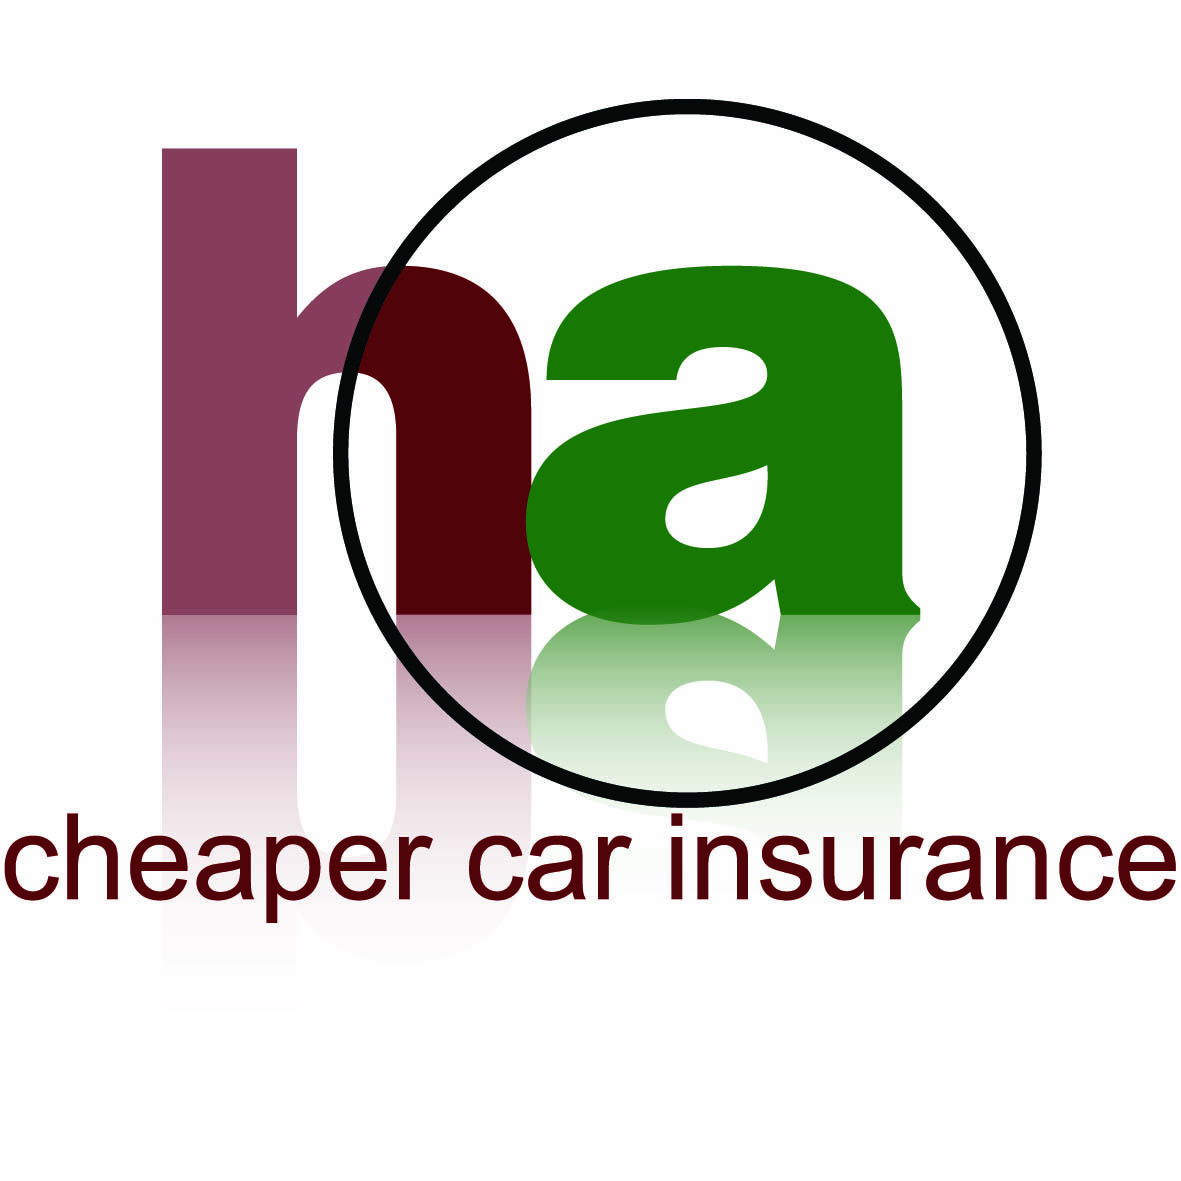 Electric car insurance with HomeApproved: http://www.homeapproved.co.uk/electric-car-insurance.html